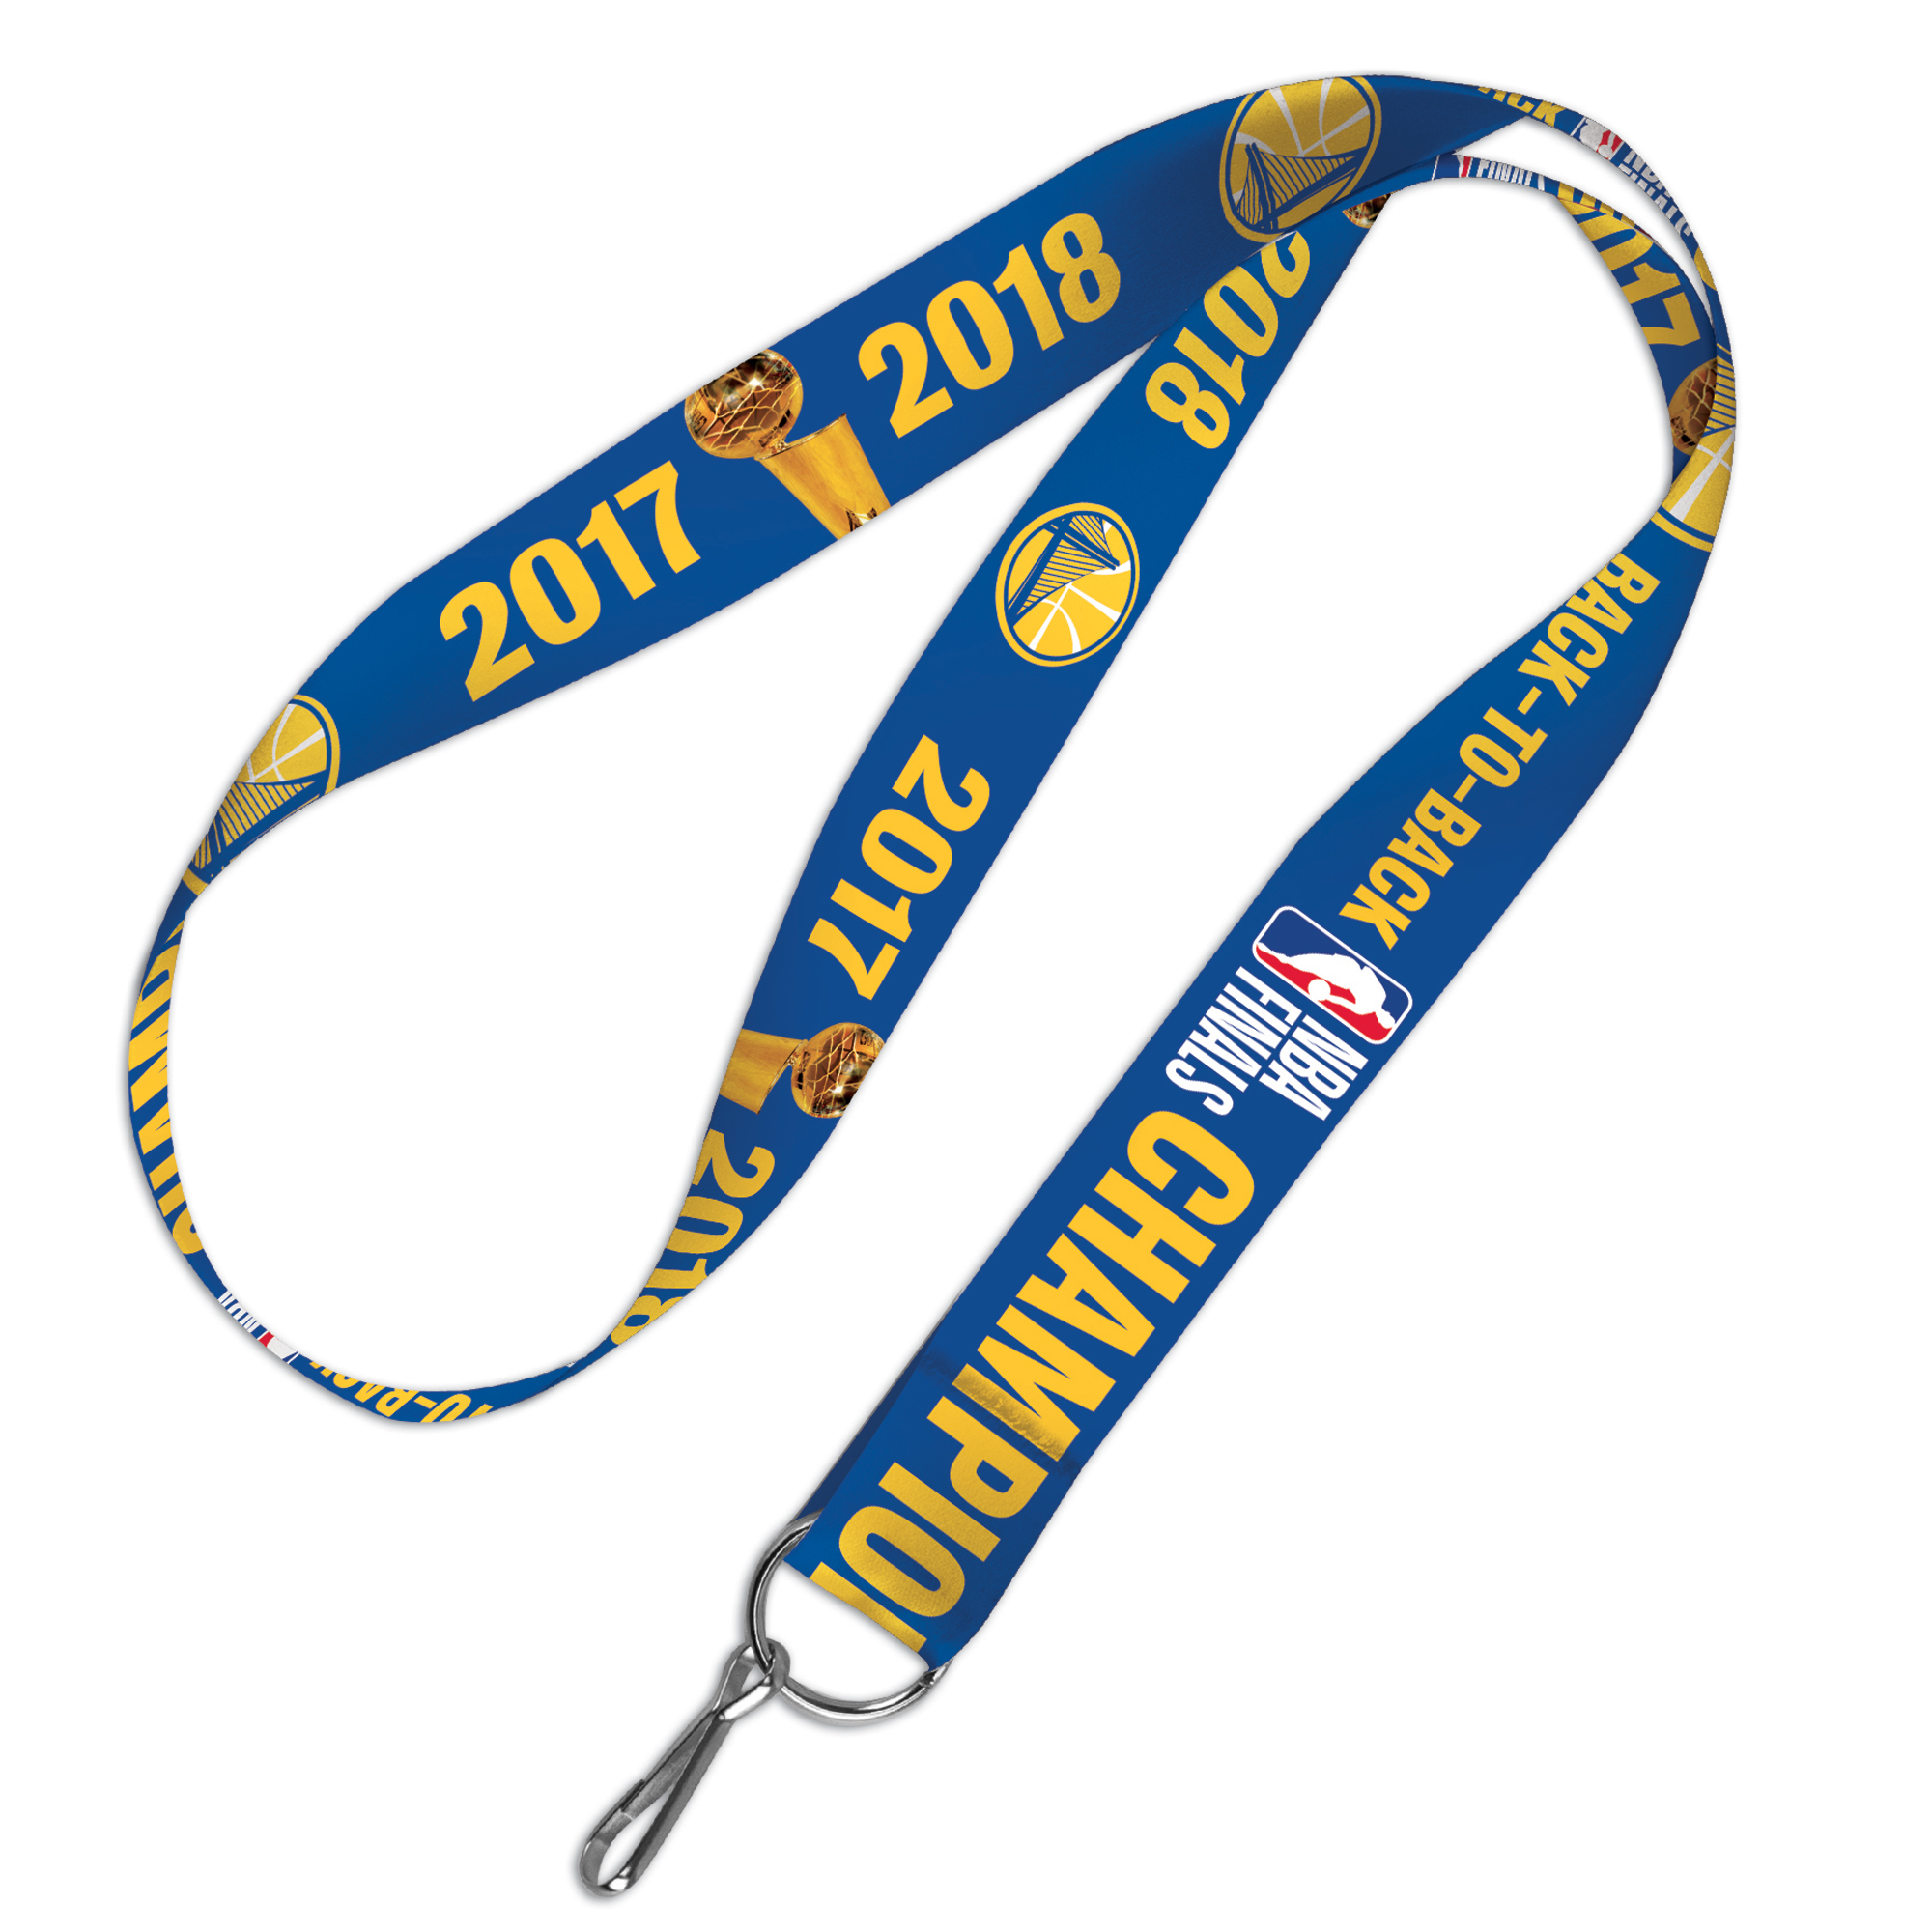 Golden State Warriors Official NBA 2018 National Champions Lanyard Key Strap Keychain by 332110